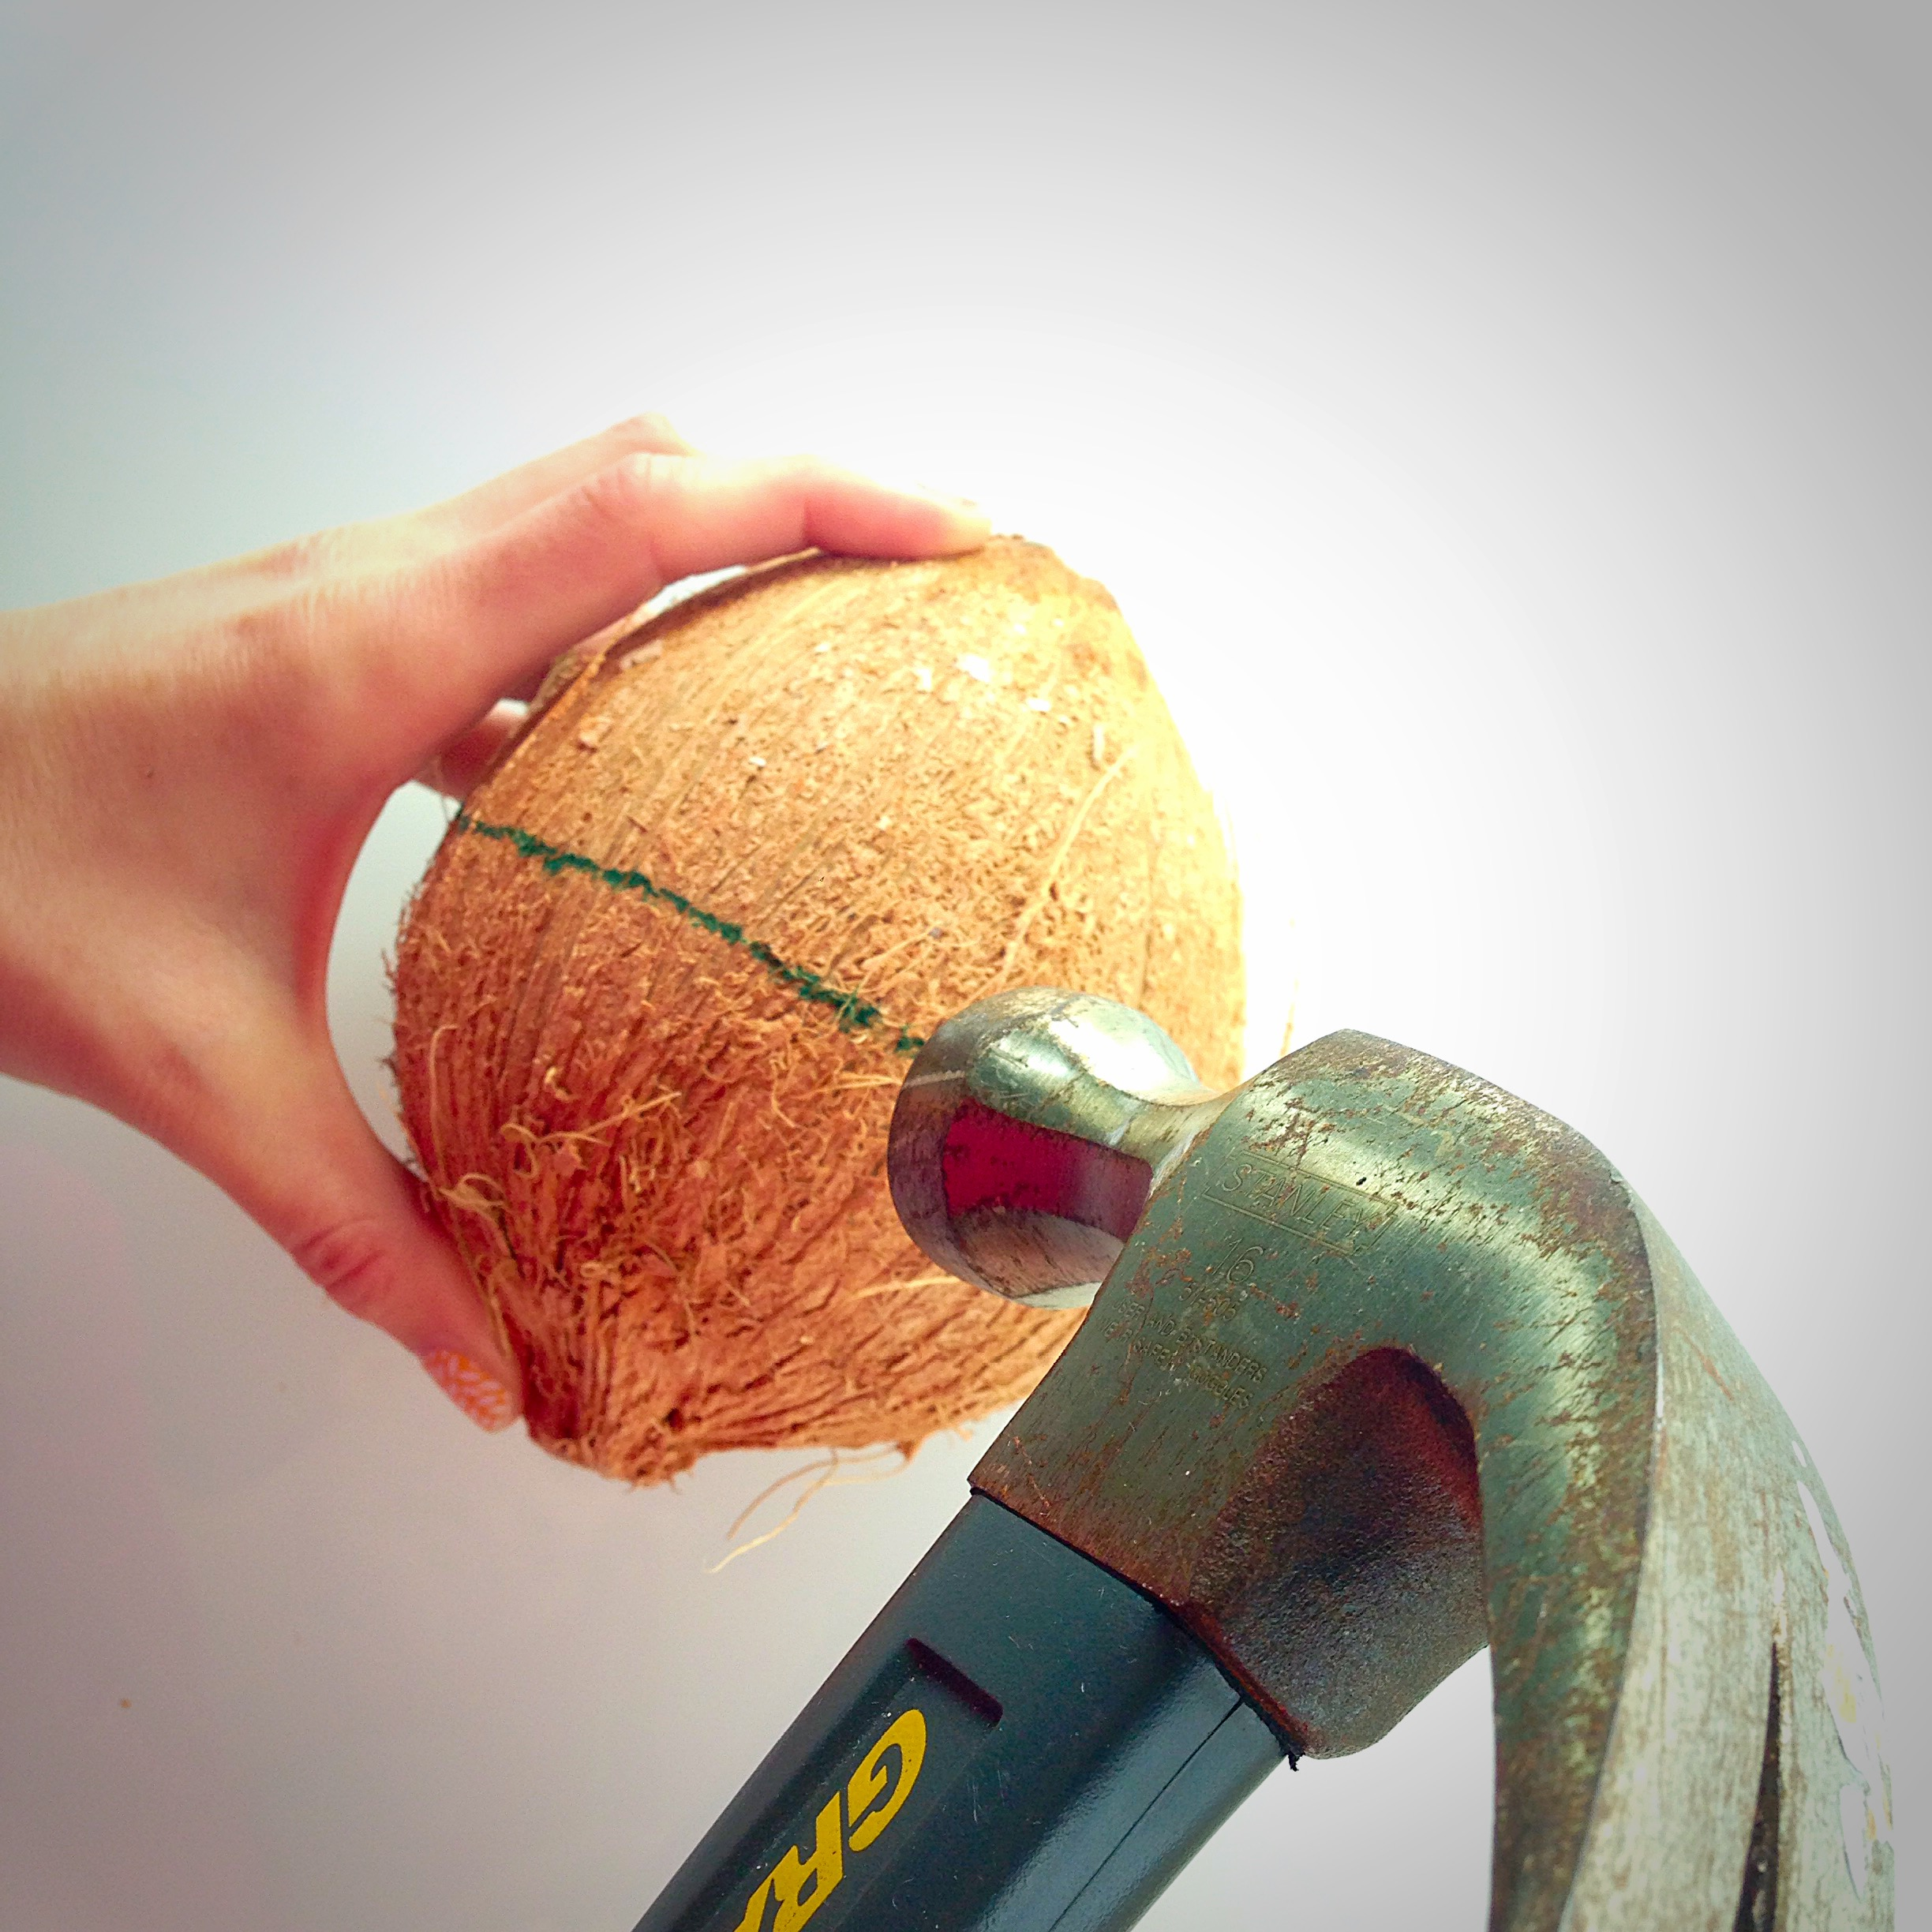 The best way to do this is to hold the coconut in one Palm while hammering it with the other hand